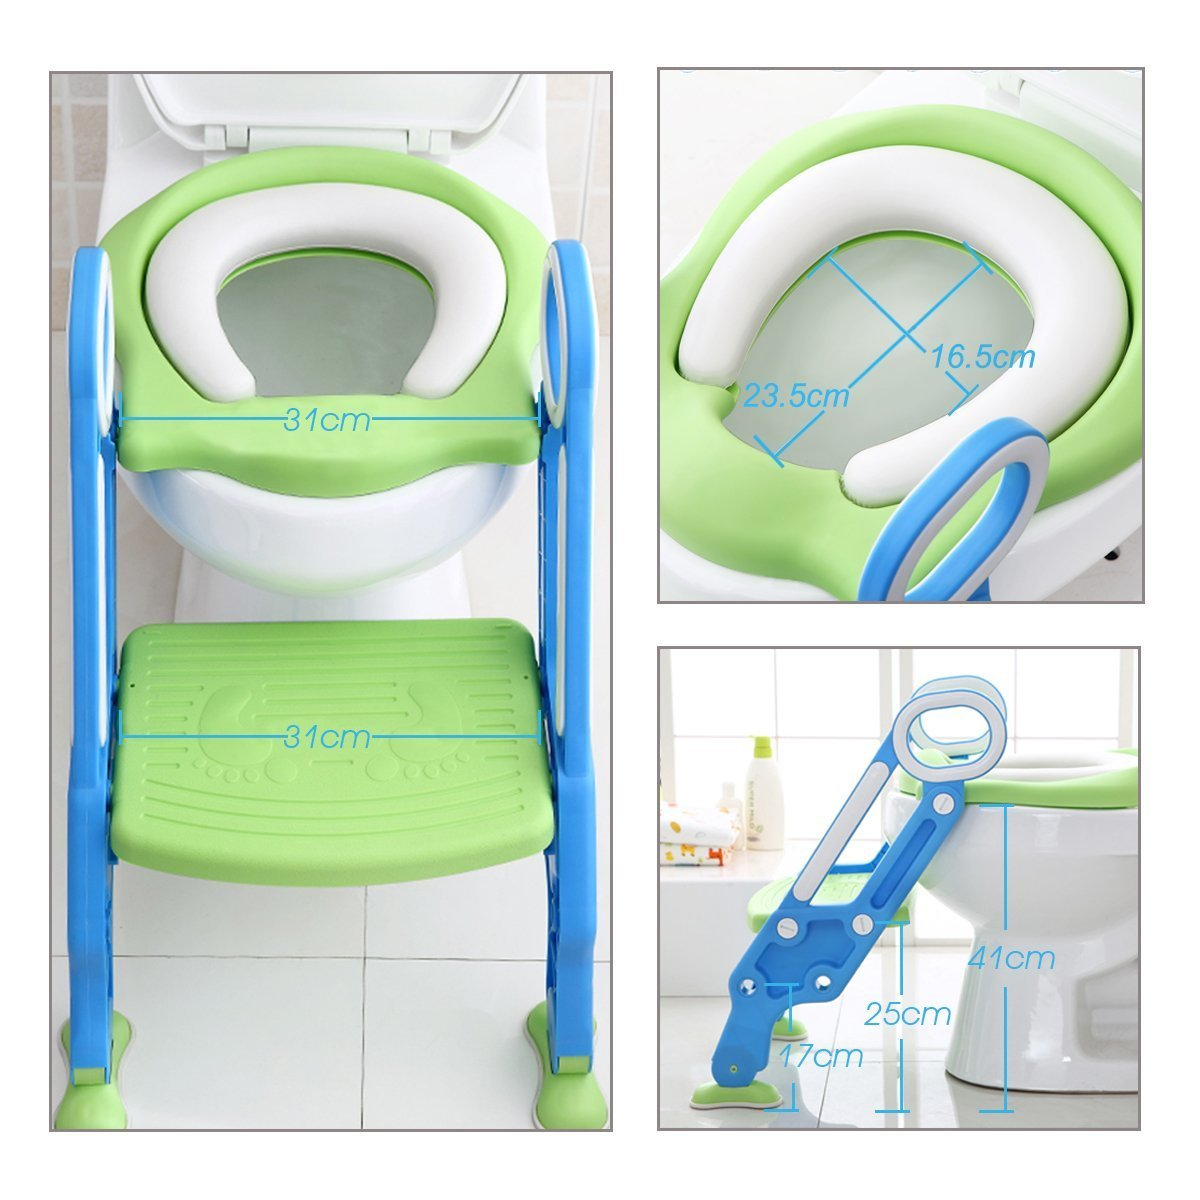 Mangohood Potty Training Toilet Seat with Step Stool Ladder for Boy and Girl Baby Toddler Kid Children's Toilet Training Seat Chair with Soft Padded Seat and Sturdy Non-Slip Wide Step (Blue Green) by Mangohood (Image #6)